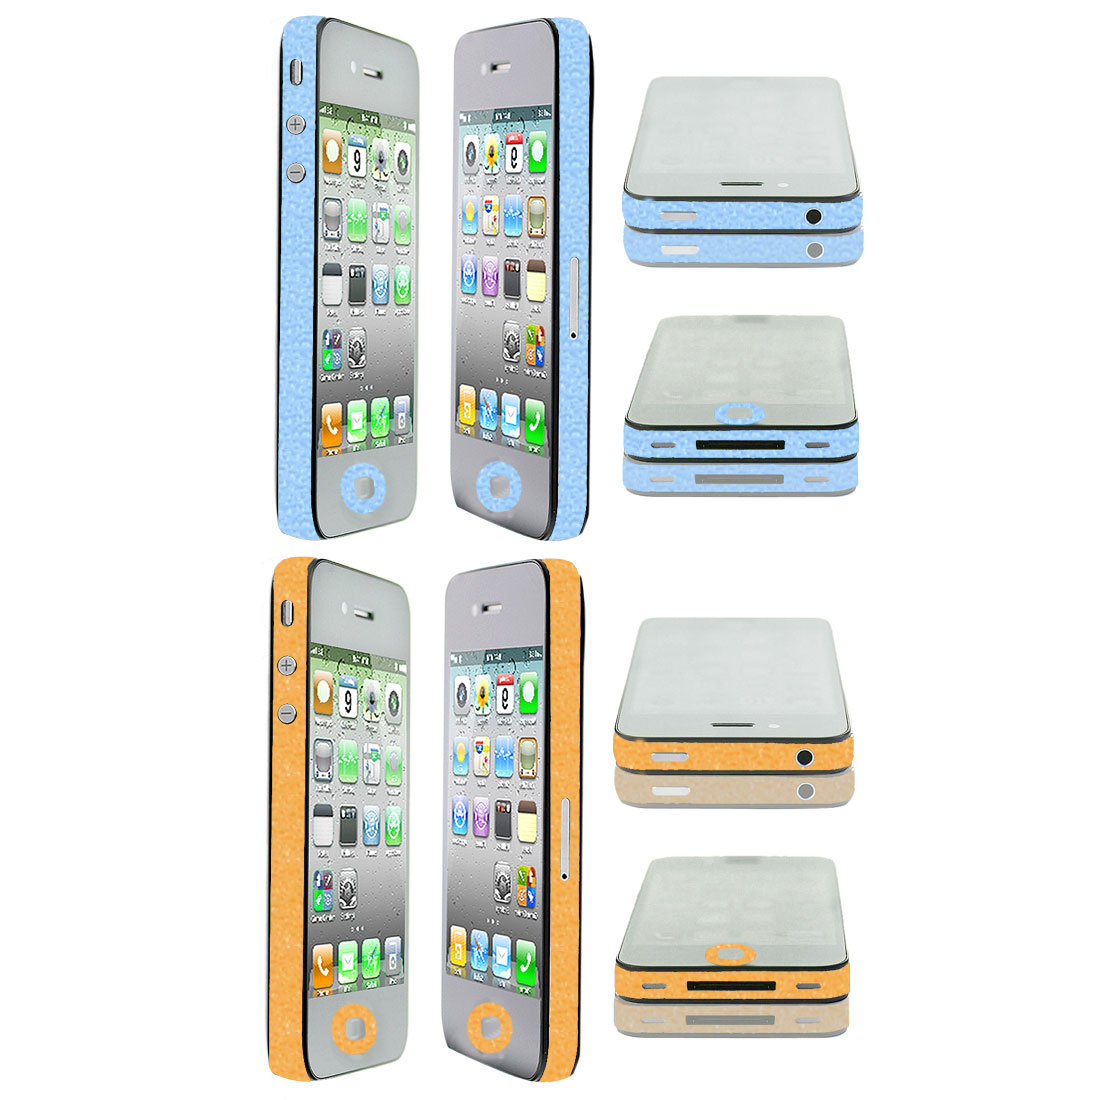 2 Pcs Orange Blue Vinyl Edge Wrap Decal Skin Sticker 2 Pcs for iPhone 4 4G 4S 4GS